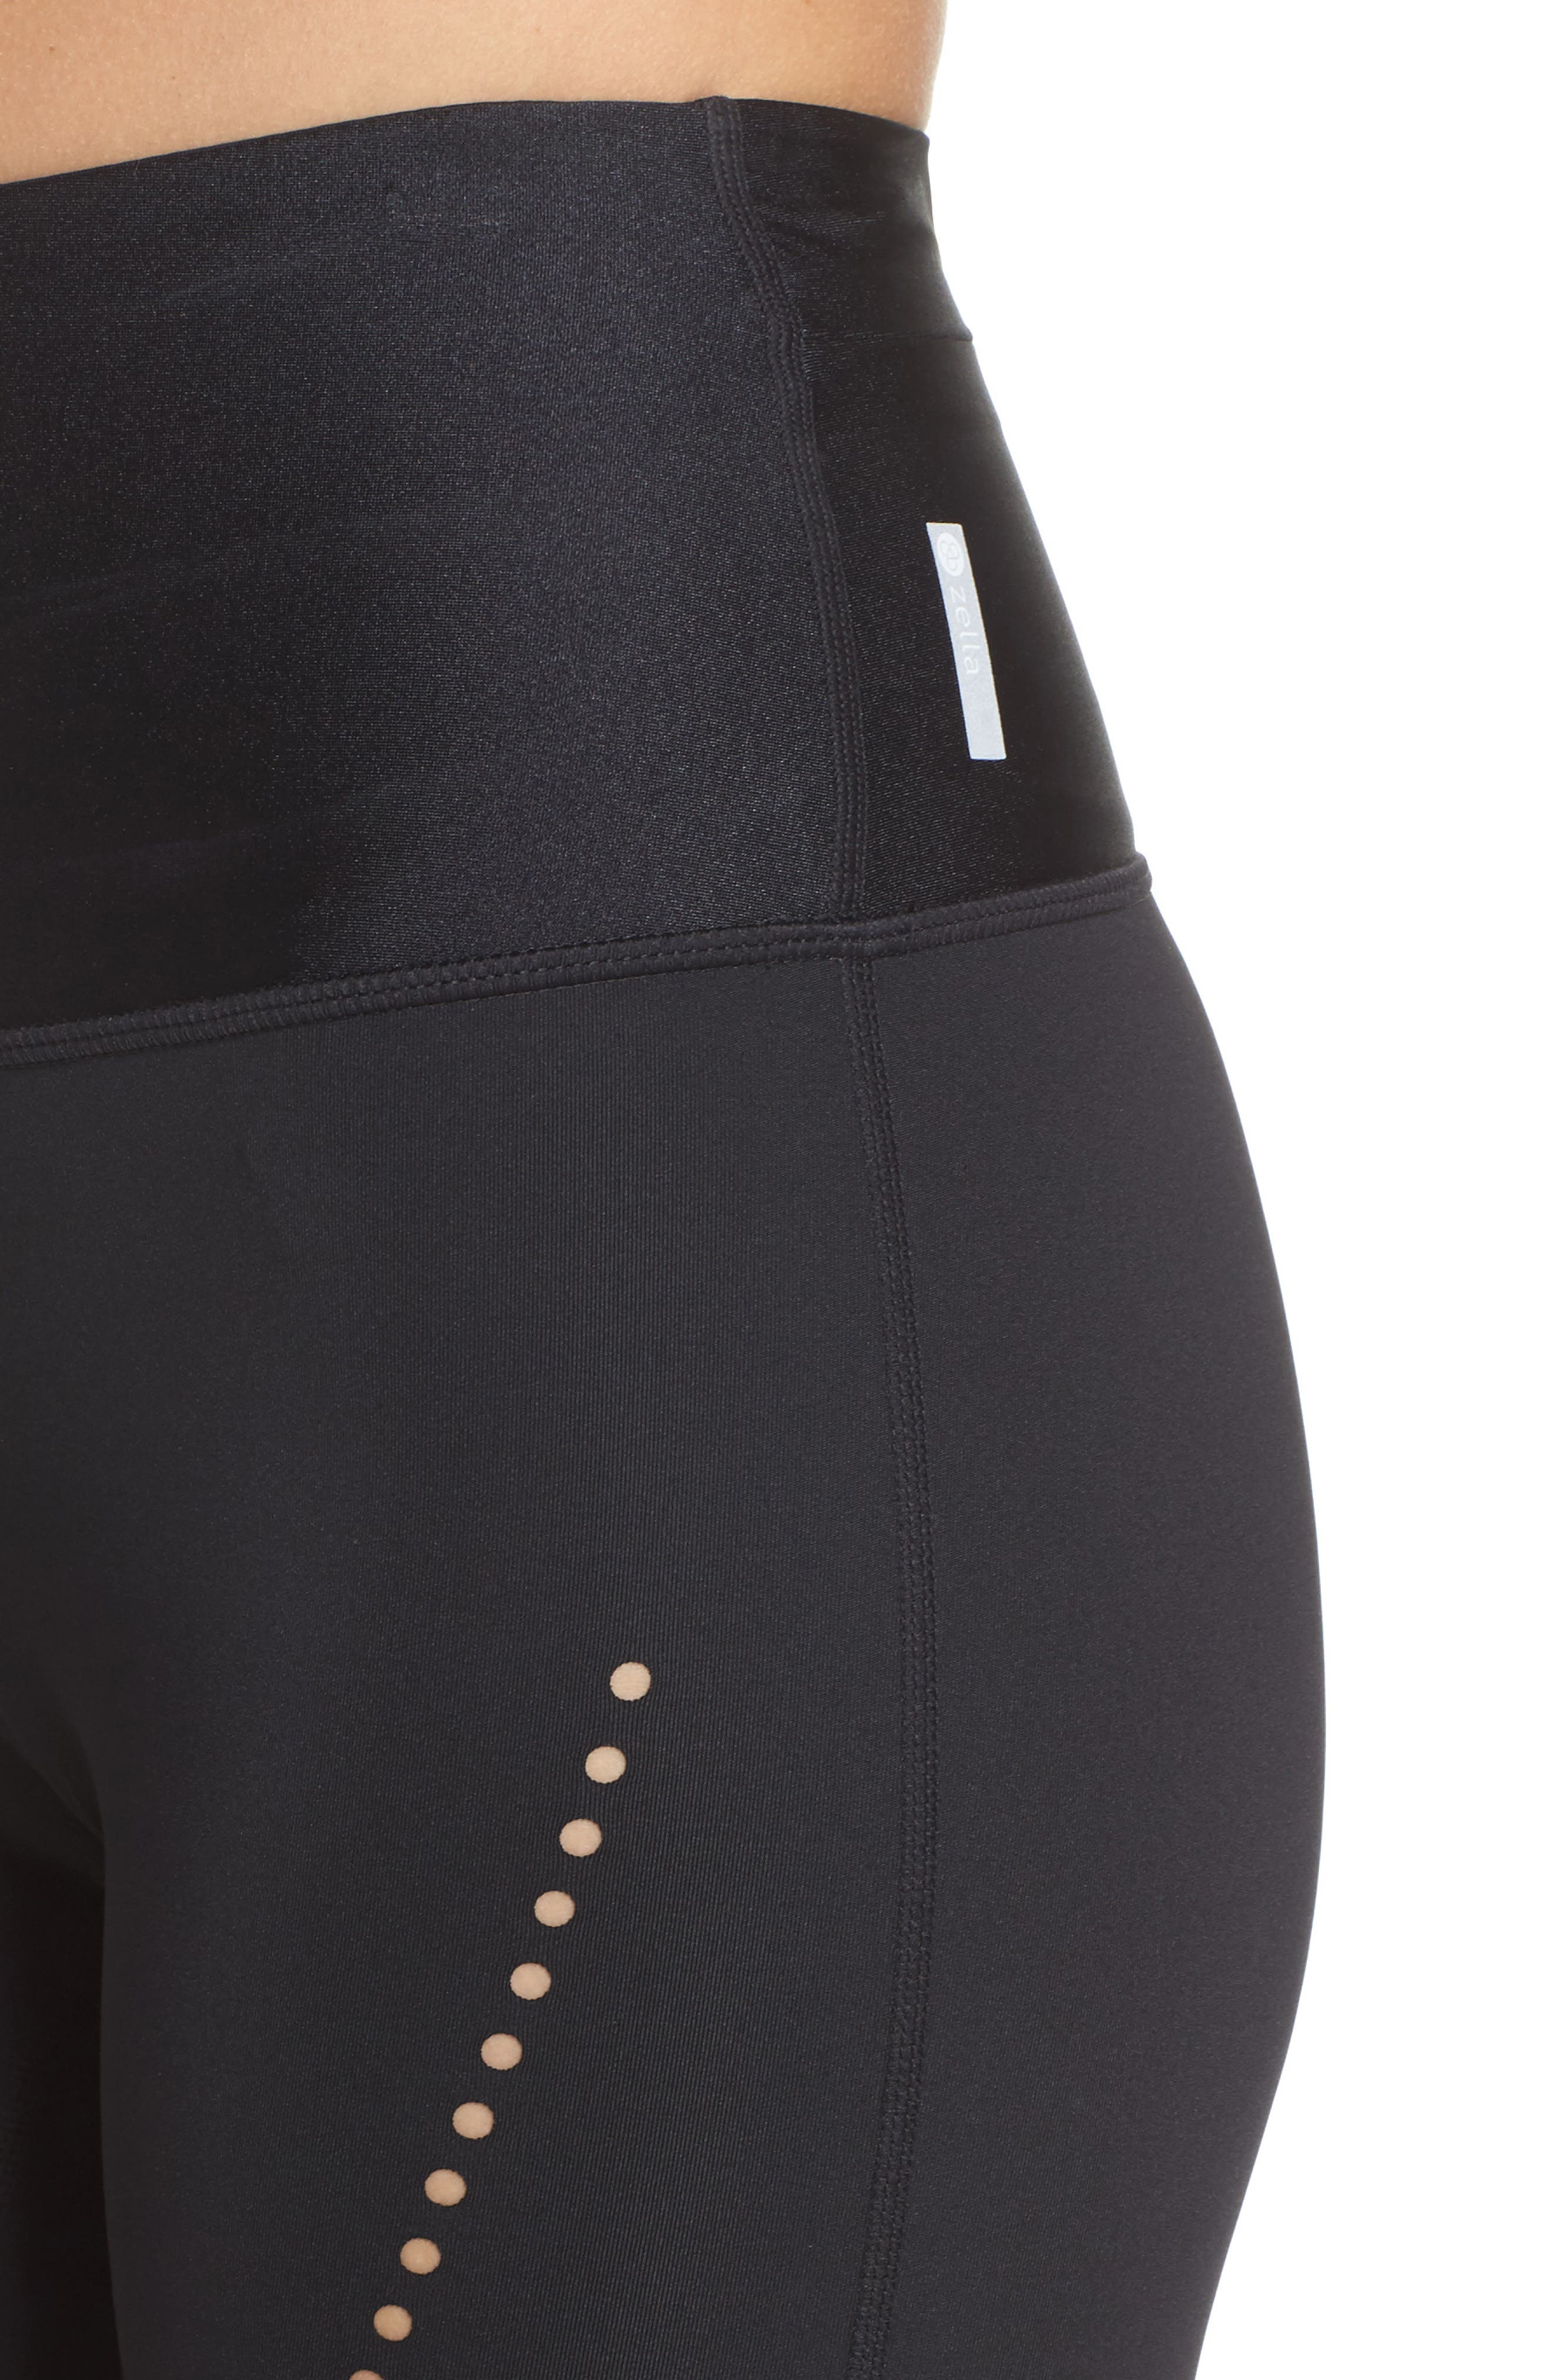 Starry Eyed High-Waist Crop Leggings,                             Alternate thumbnail 4, color,                             Black